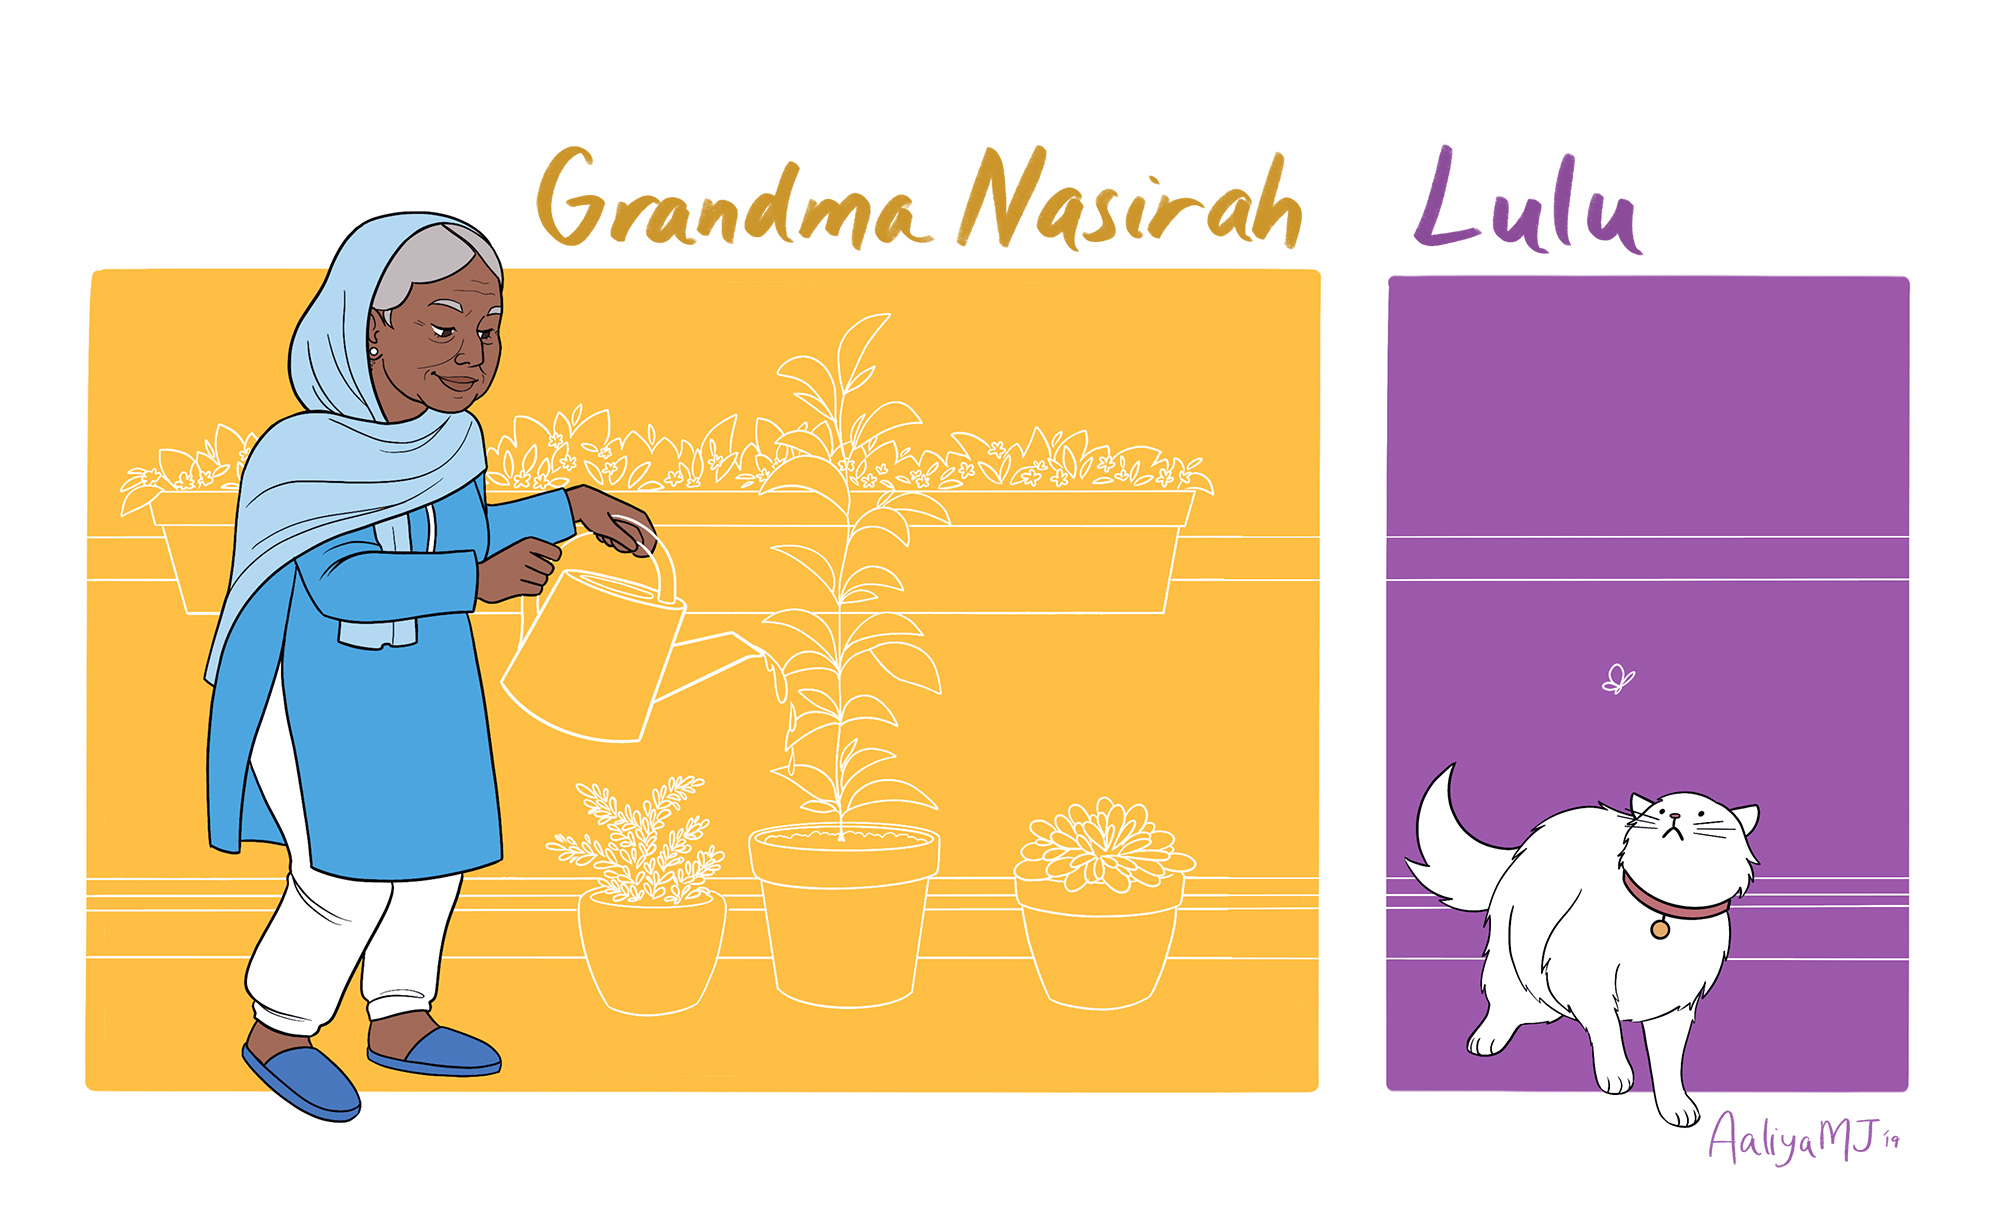 Nasirah has been Jenna's primary caretaker and guardian for the past ten years. While she grieved the loss of her son and daughter-in-law, she has since found solace in looking after her granddaughter. Nasirah's spiritual nature makes her a firm believer in destiny and that things happen for a reason. In her old age, she enjoys gardening and making sure Jenna stays out of as much trouble as possible.  Jenna and Nasirah's cat Lulu was a fat and happy cat until Sami showed up. Unfortunately for this textbook scaredy cat who is easily spooked, she too can see Sami.